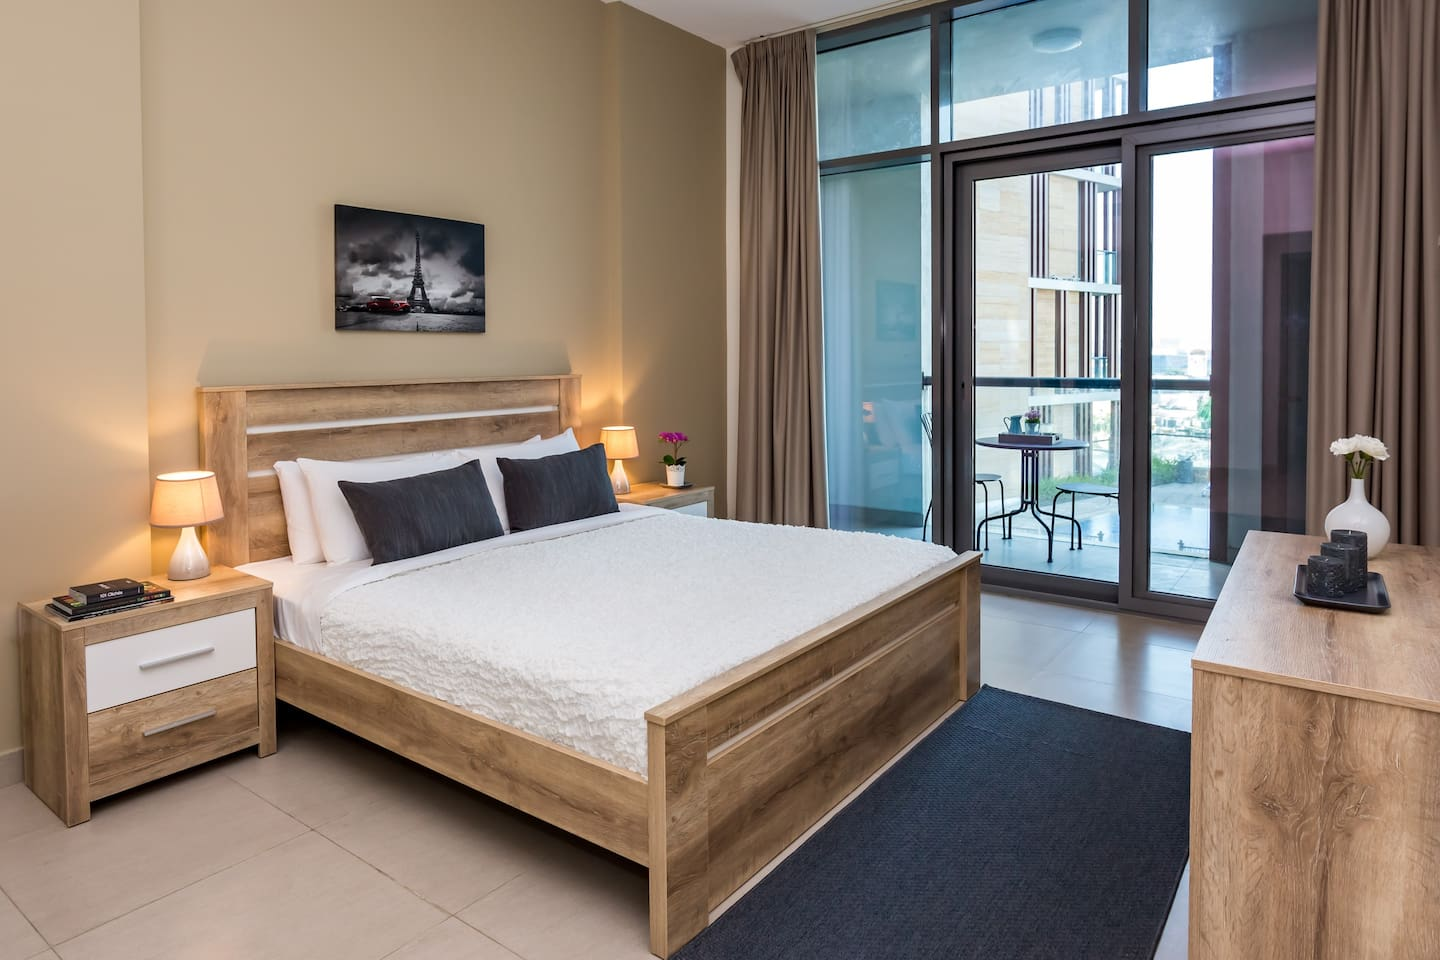 The master bedroom has a bathroom attached to the room and includes plenty of storage space for the guests